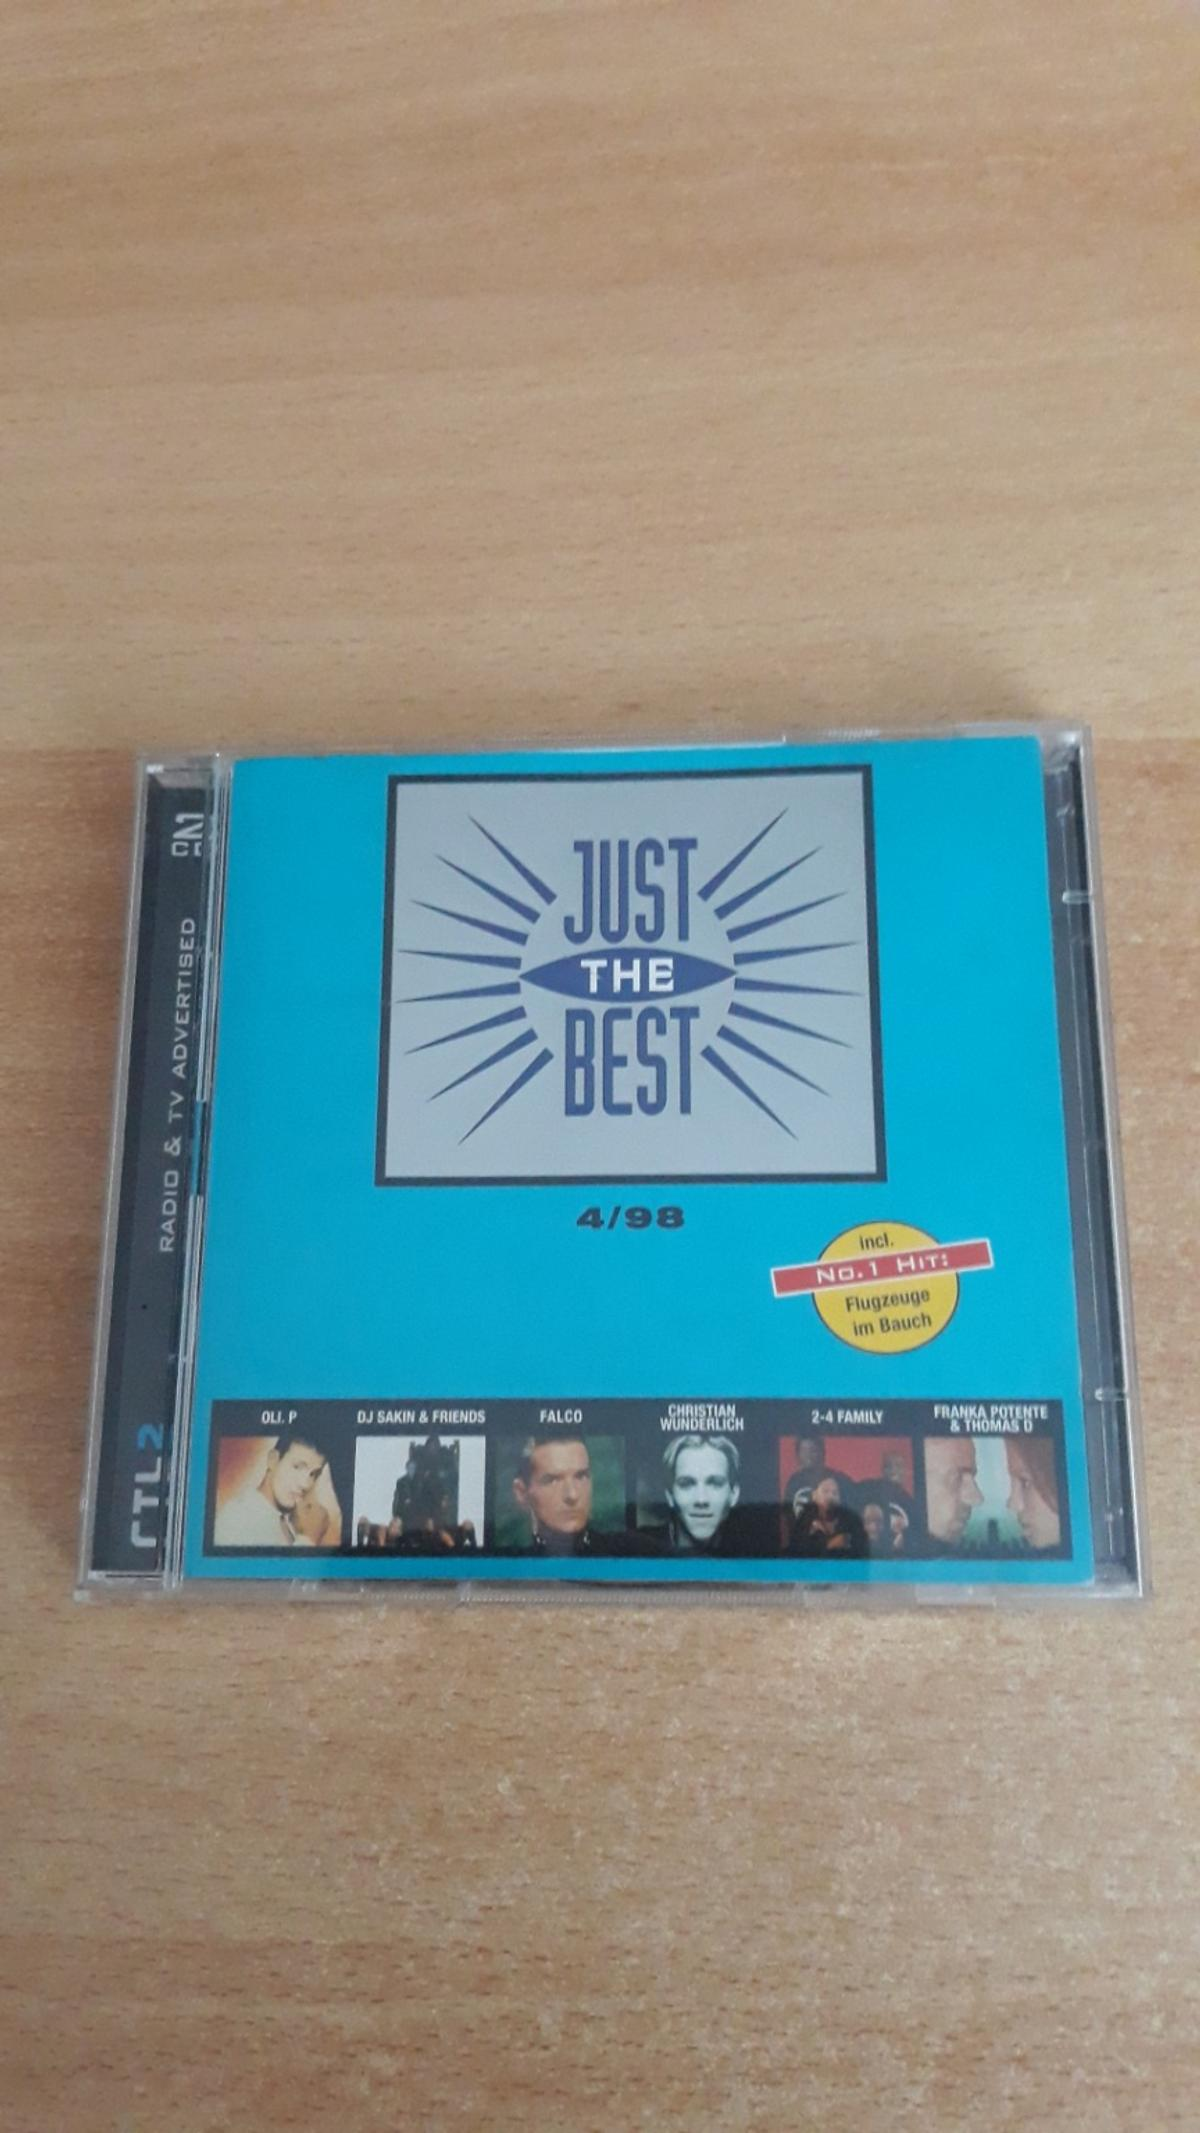 CD Just The Best 2CD 4/98 ( versende auch)